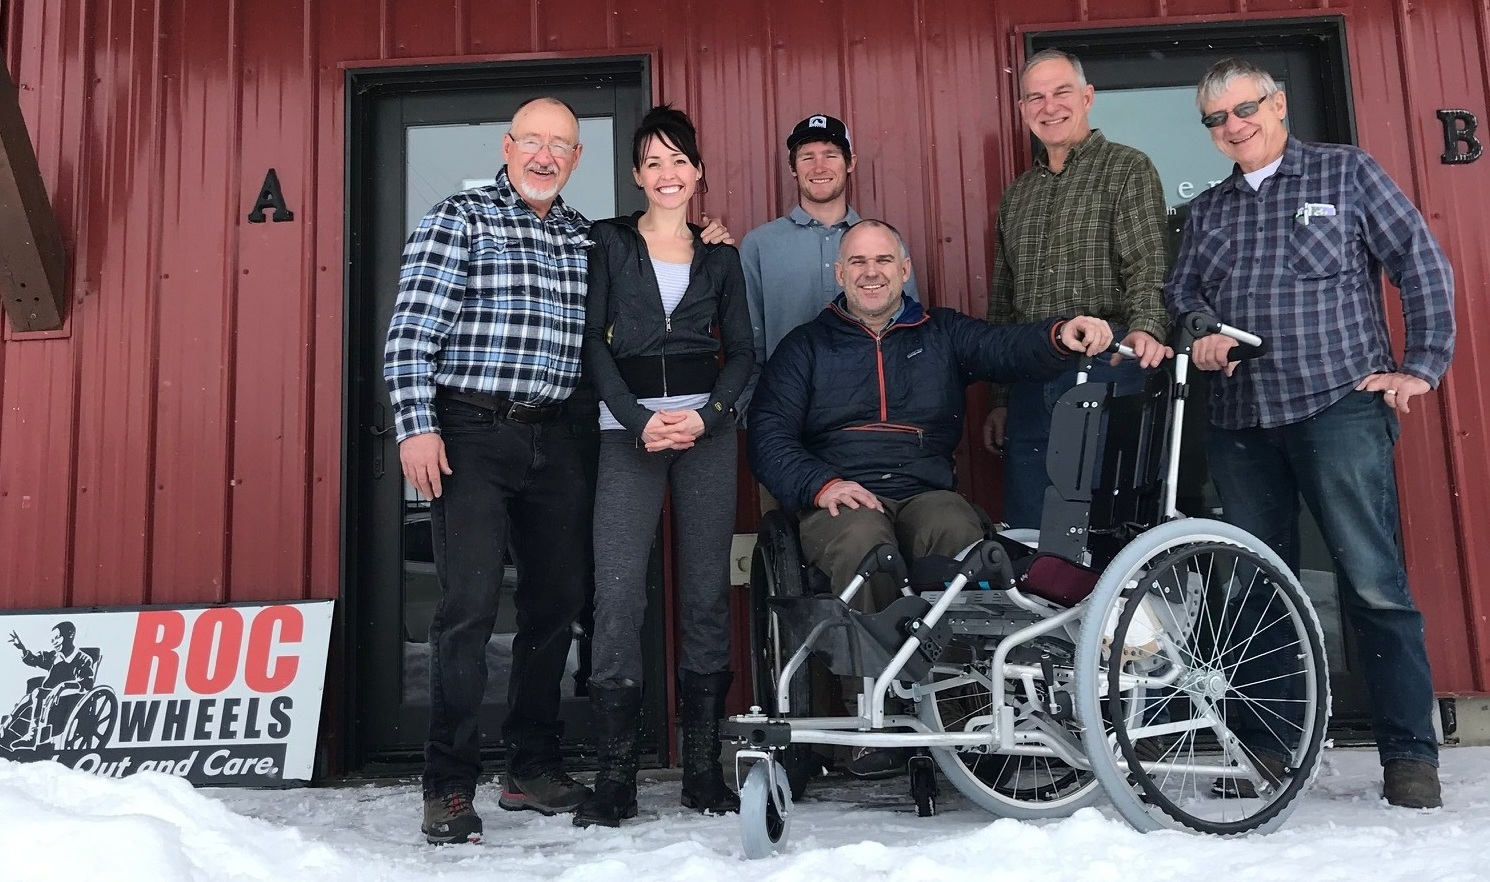 Wayne Hanson, Jeni Ramsey, Reef Larwood, Dave Calver, Martin Haas, Paul Nokes   THE PARTICIPANT CHAIR : ROC Wheels was chosen by Participant.Life to be the primary design Team of a new seating and mobility system, to serve children all the way from infancy to young adult ages.